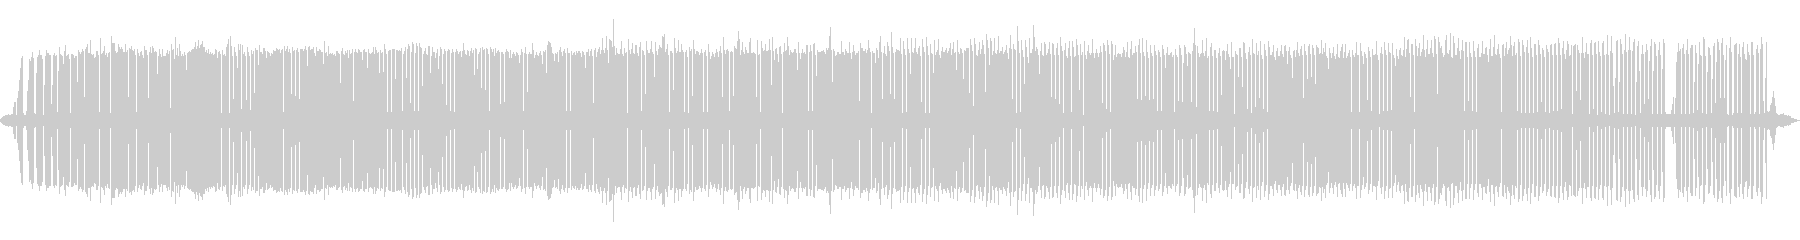 Crickets [early autumn, late at night, roadside]'s unreproduced waveform